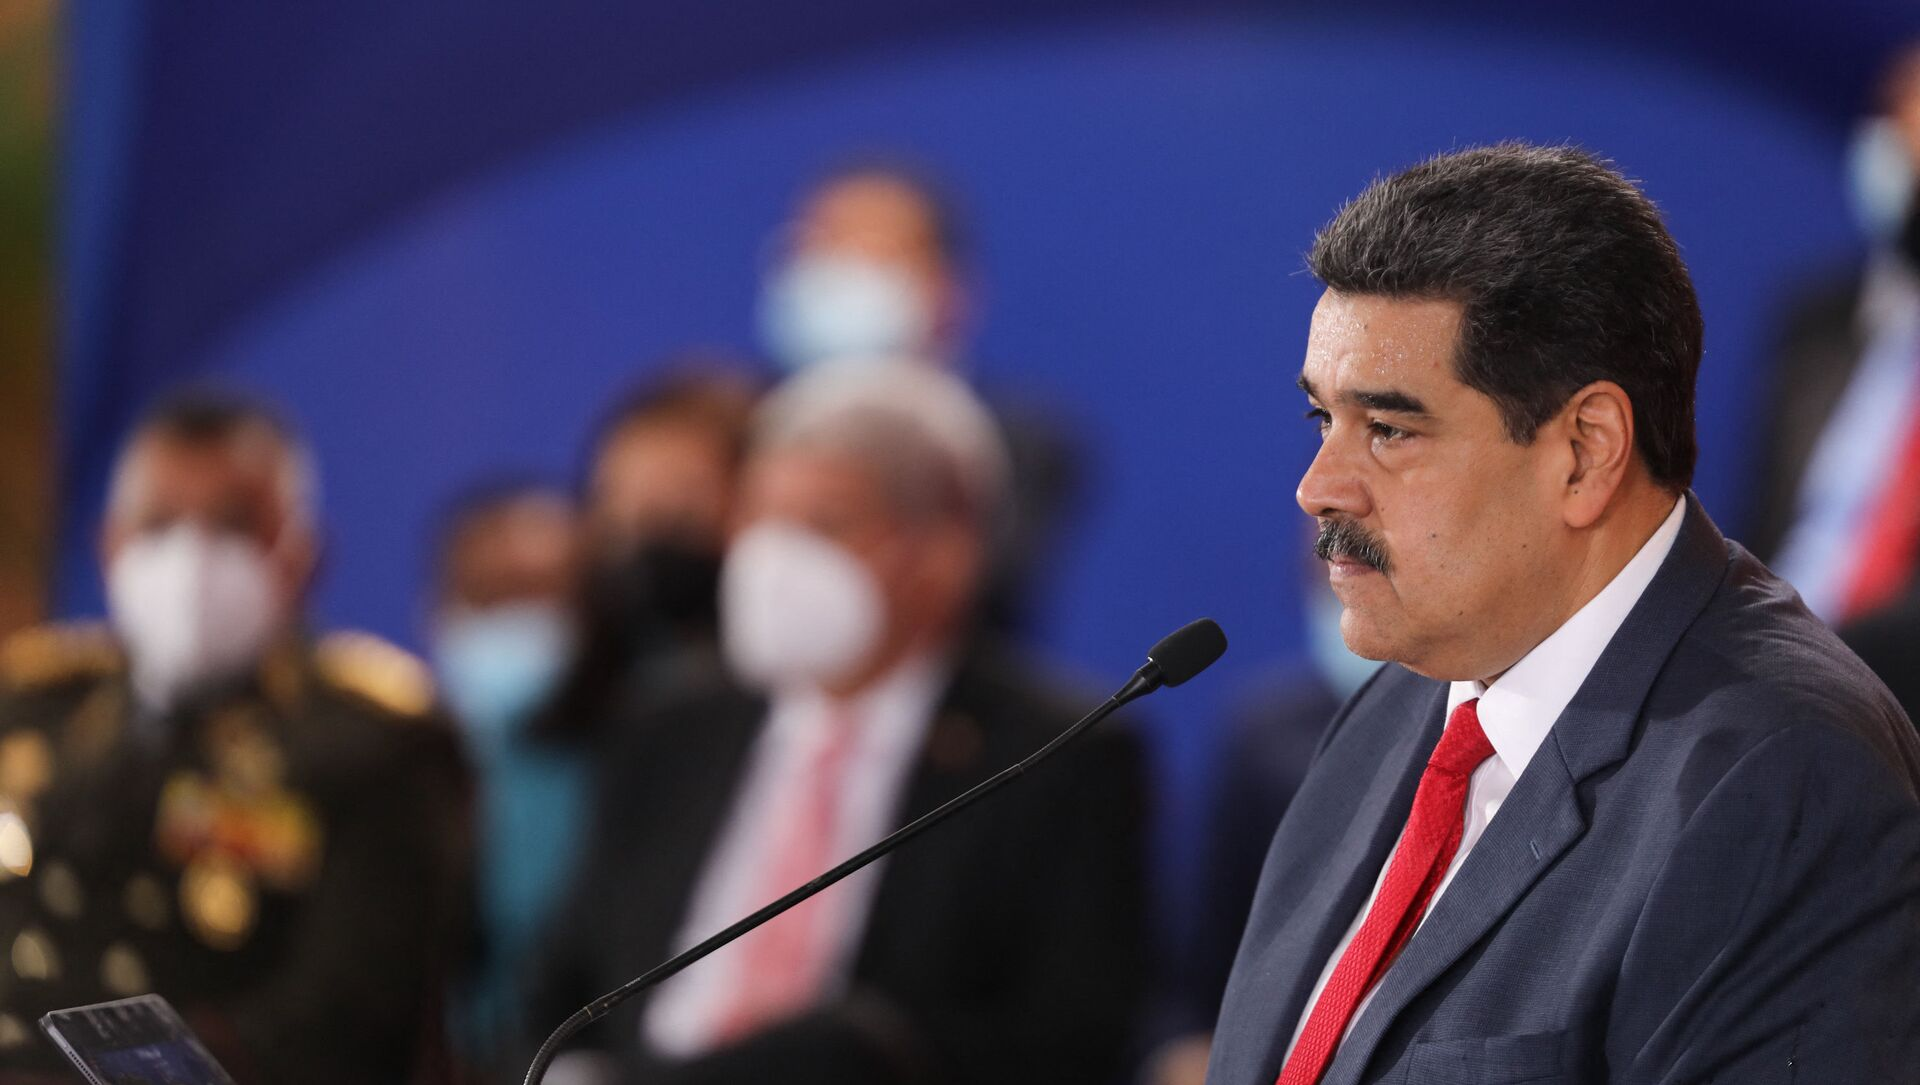 Handout picture released by the Venezuelan presidency showing Venezuelan President Nicolas Maduro, speaking during the Bolivarian Alliance for the Peoples of America (ALBA) Summit at the Miraflores presidential palace in Caracas, on June 24, 2021. - Sputnik International, 1920, 03.07.2021